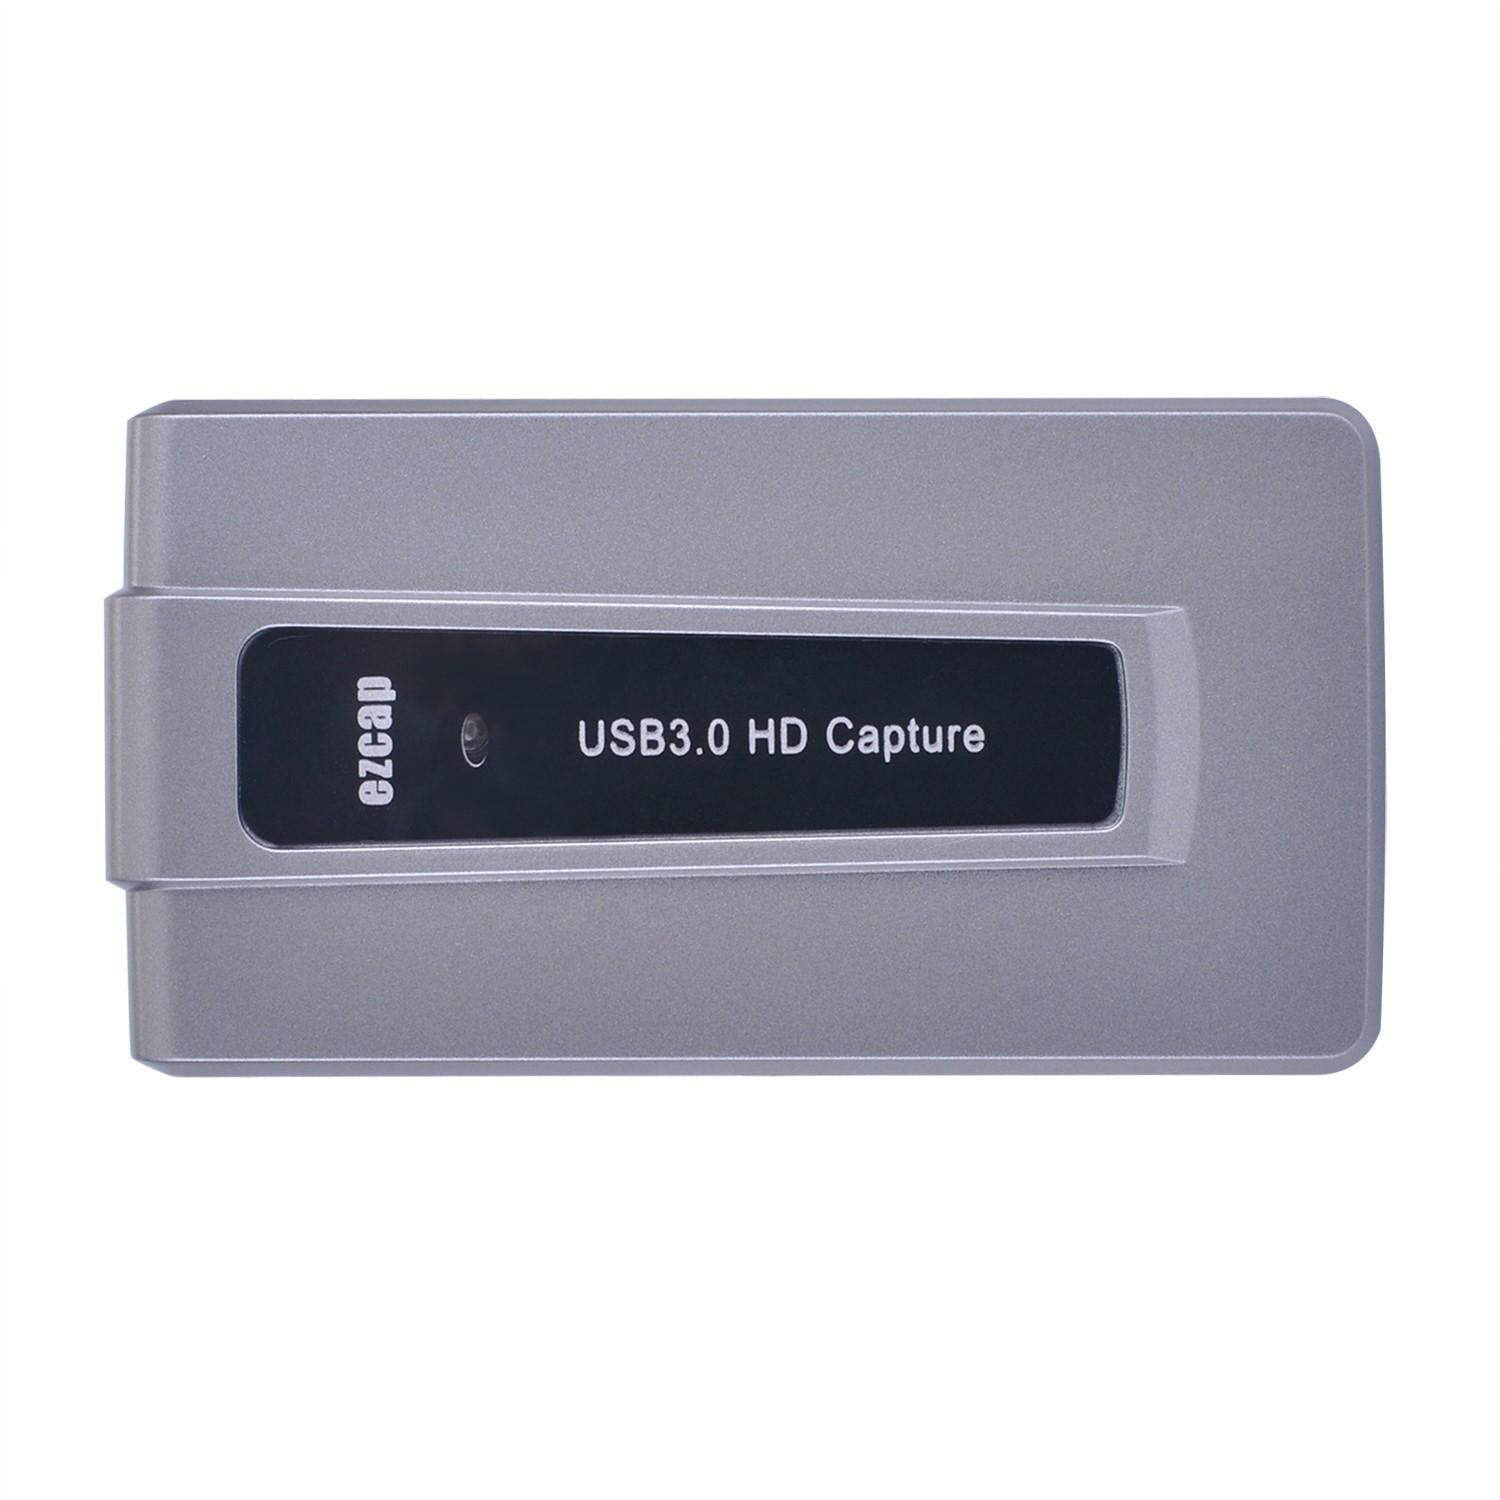 Wholesale EZCAP287 USB3.0 1080P HD Game Live Broadcast Video Capture Box for OBS PC Windows